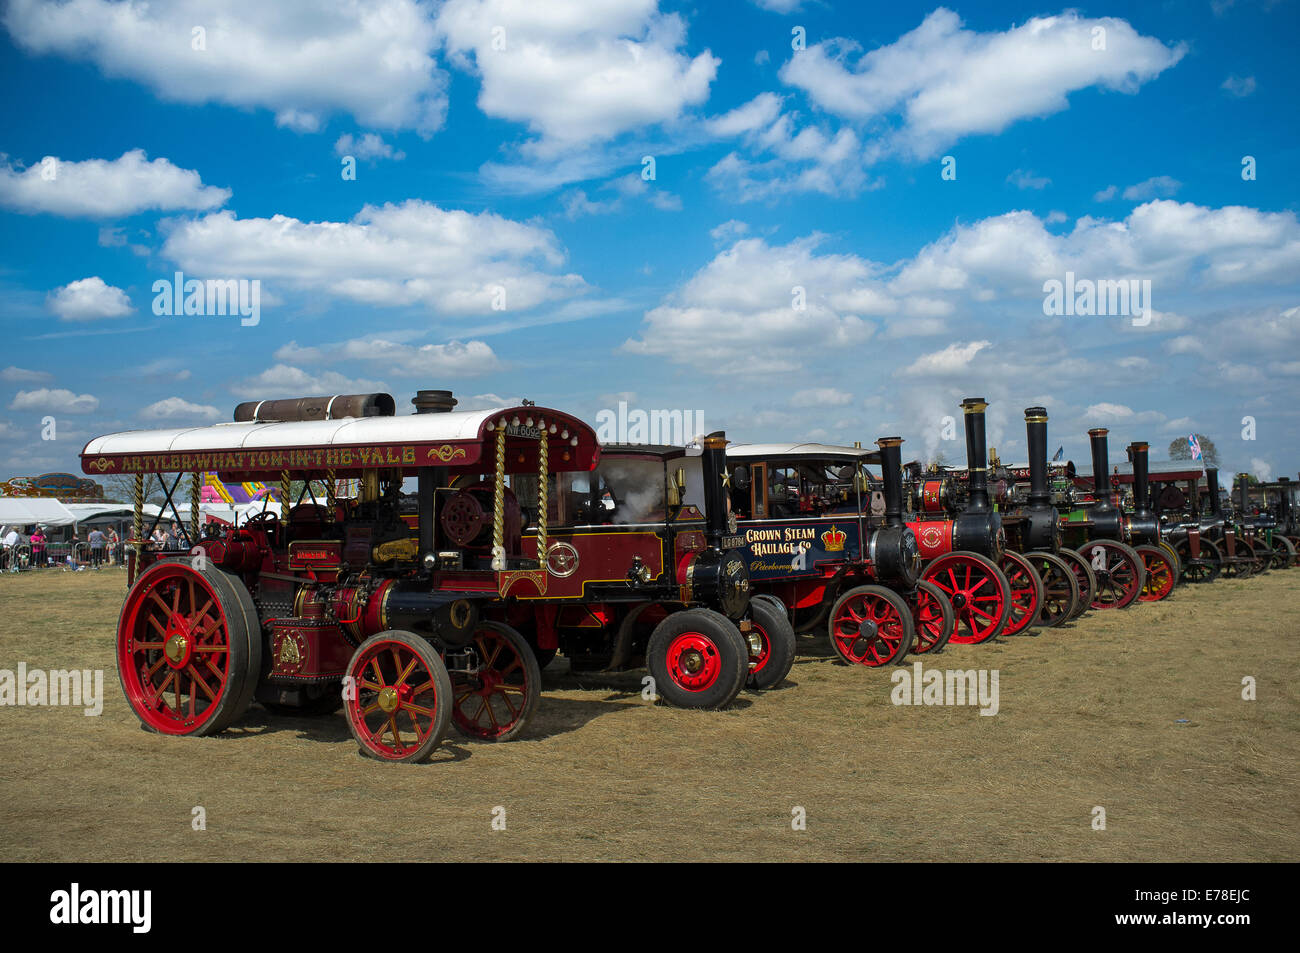 Line up of traction engines at a steam enthusiast's fair in England. - Stock Image